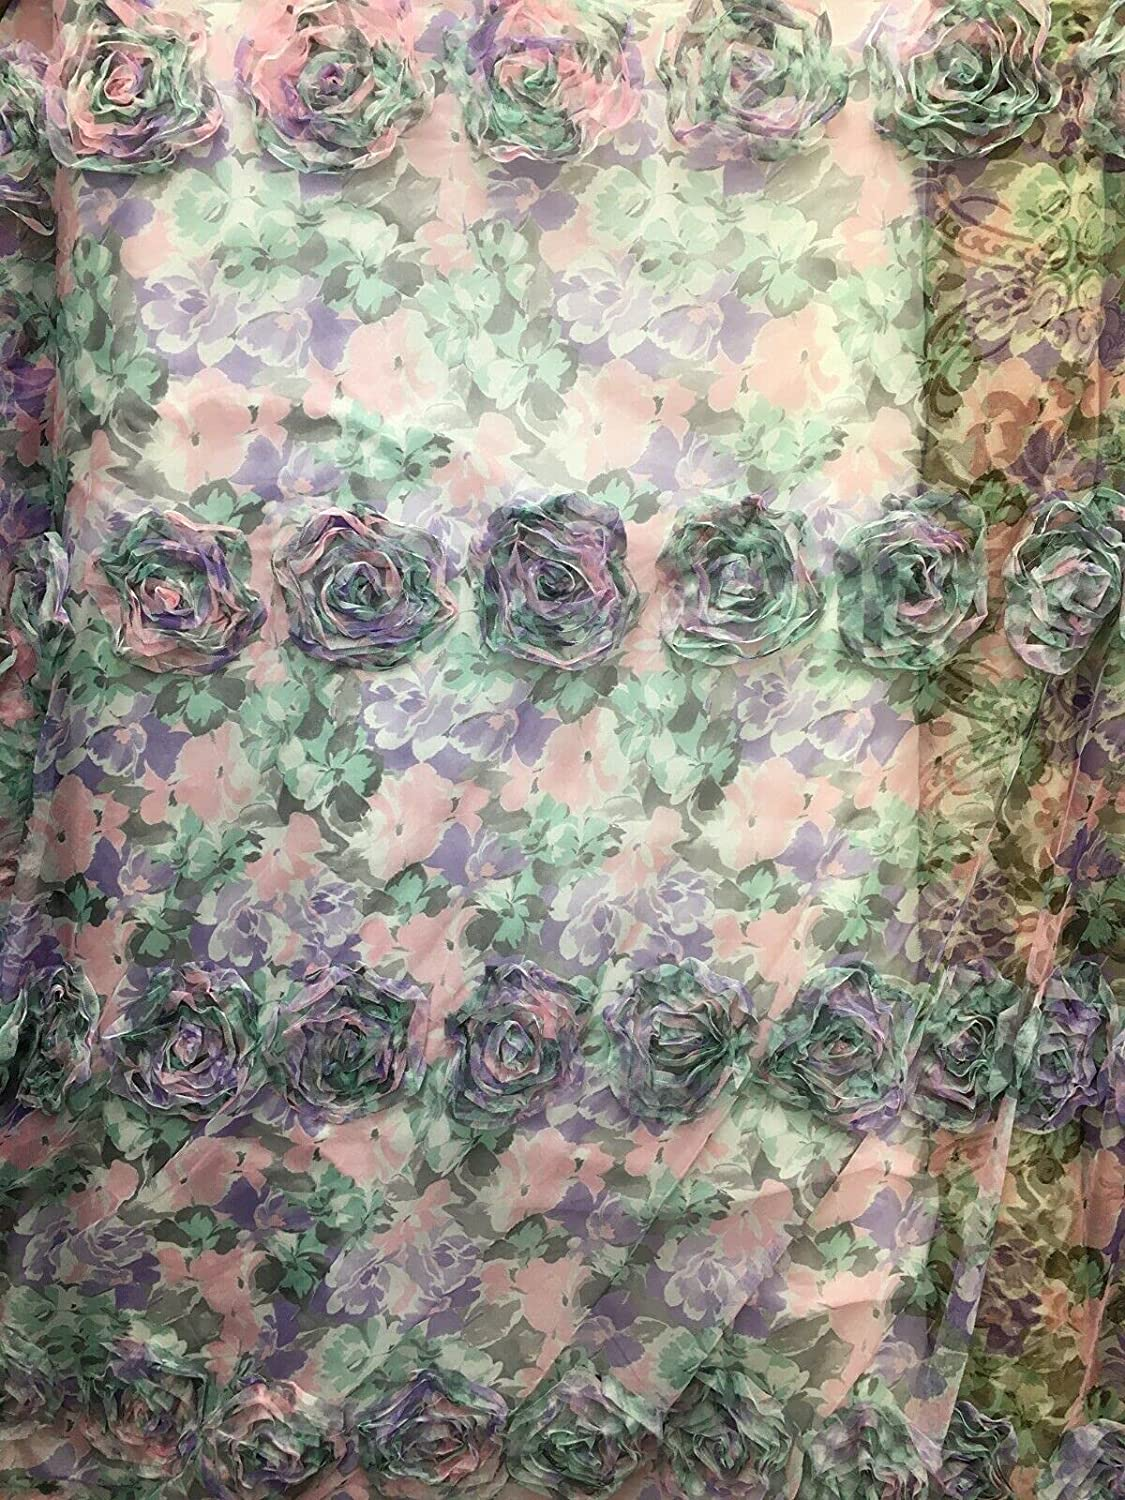 Fabric by The Yard - Embroidered Peach Multicolor Floral Rosette 25% OFF wholesale